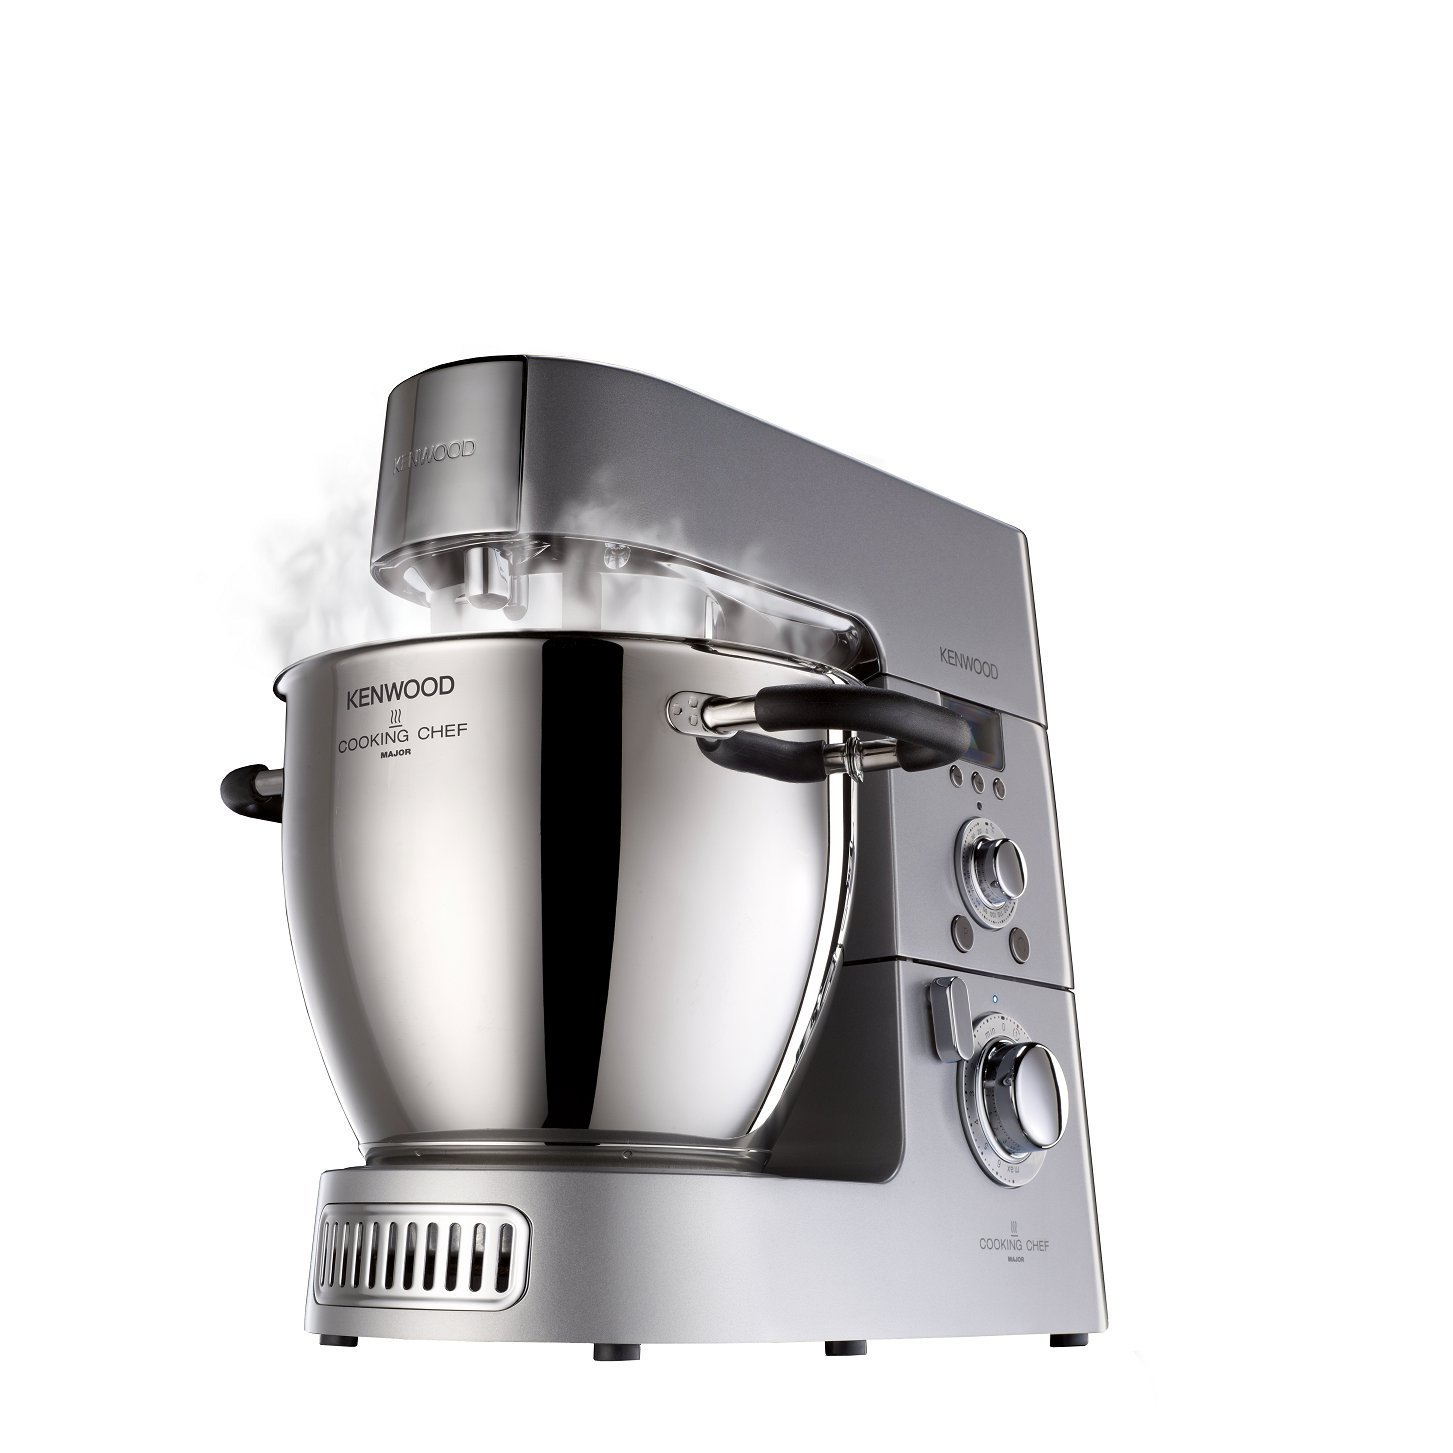 comprar kenwood cooking chef opiniones